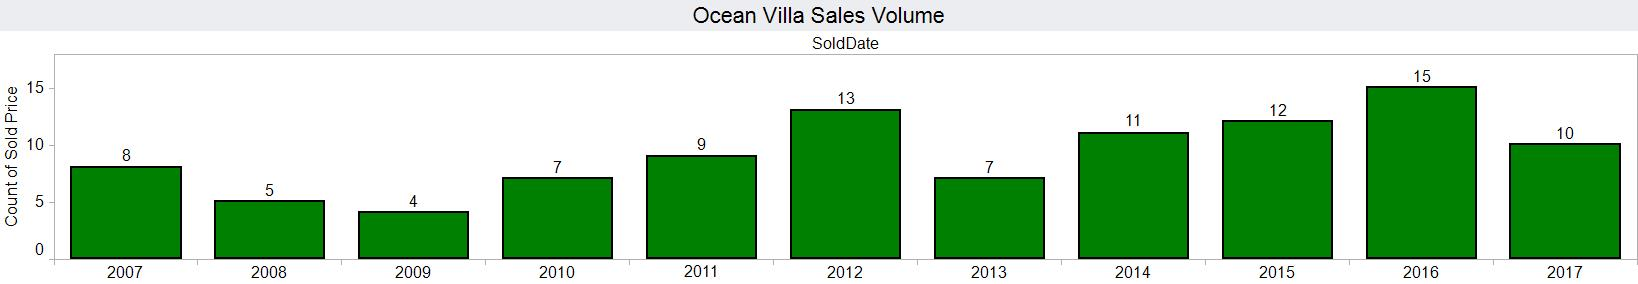 Ocean Villa sales volume